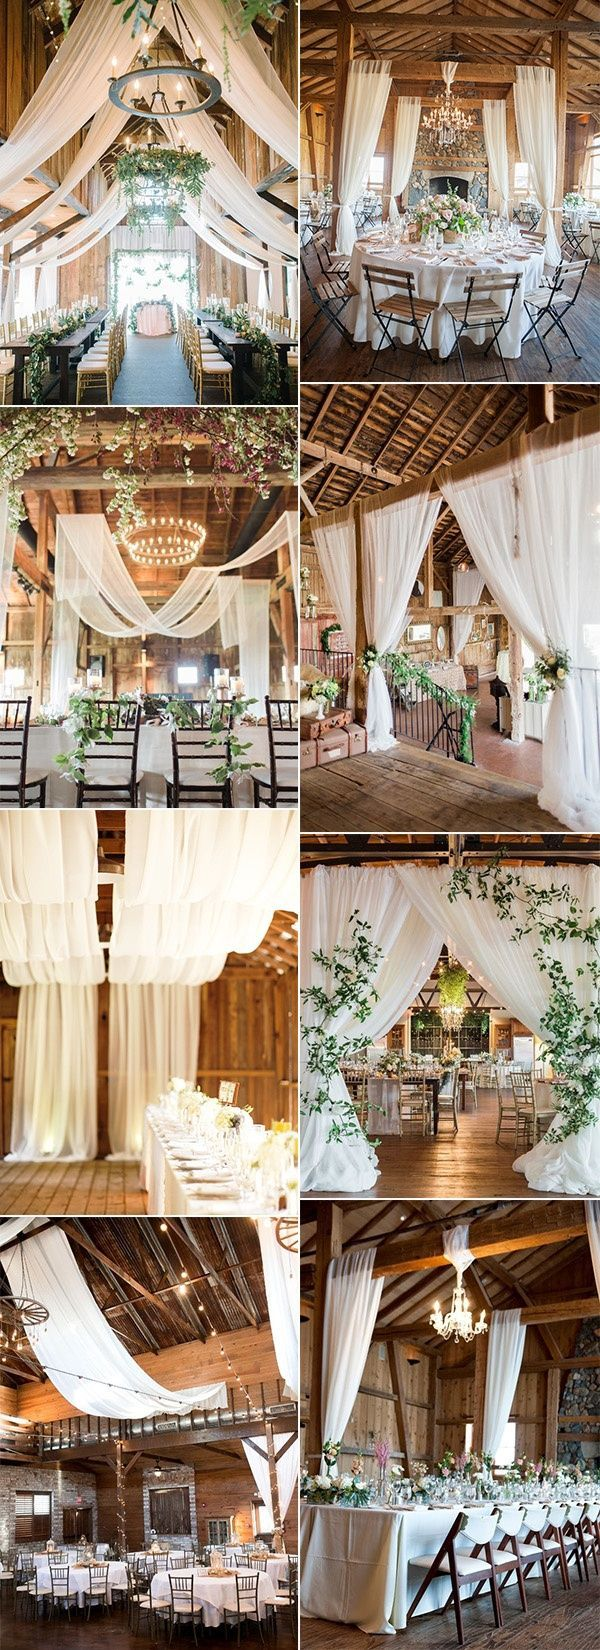 Trending-20 Brilliant Wedding Reception Ideas with Draped Fabric for 2019 - Page 2 of 2 #hochzeitsdeko